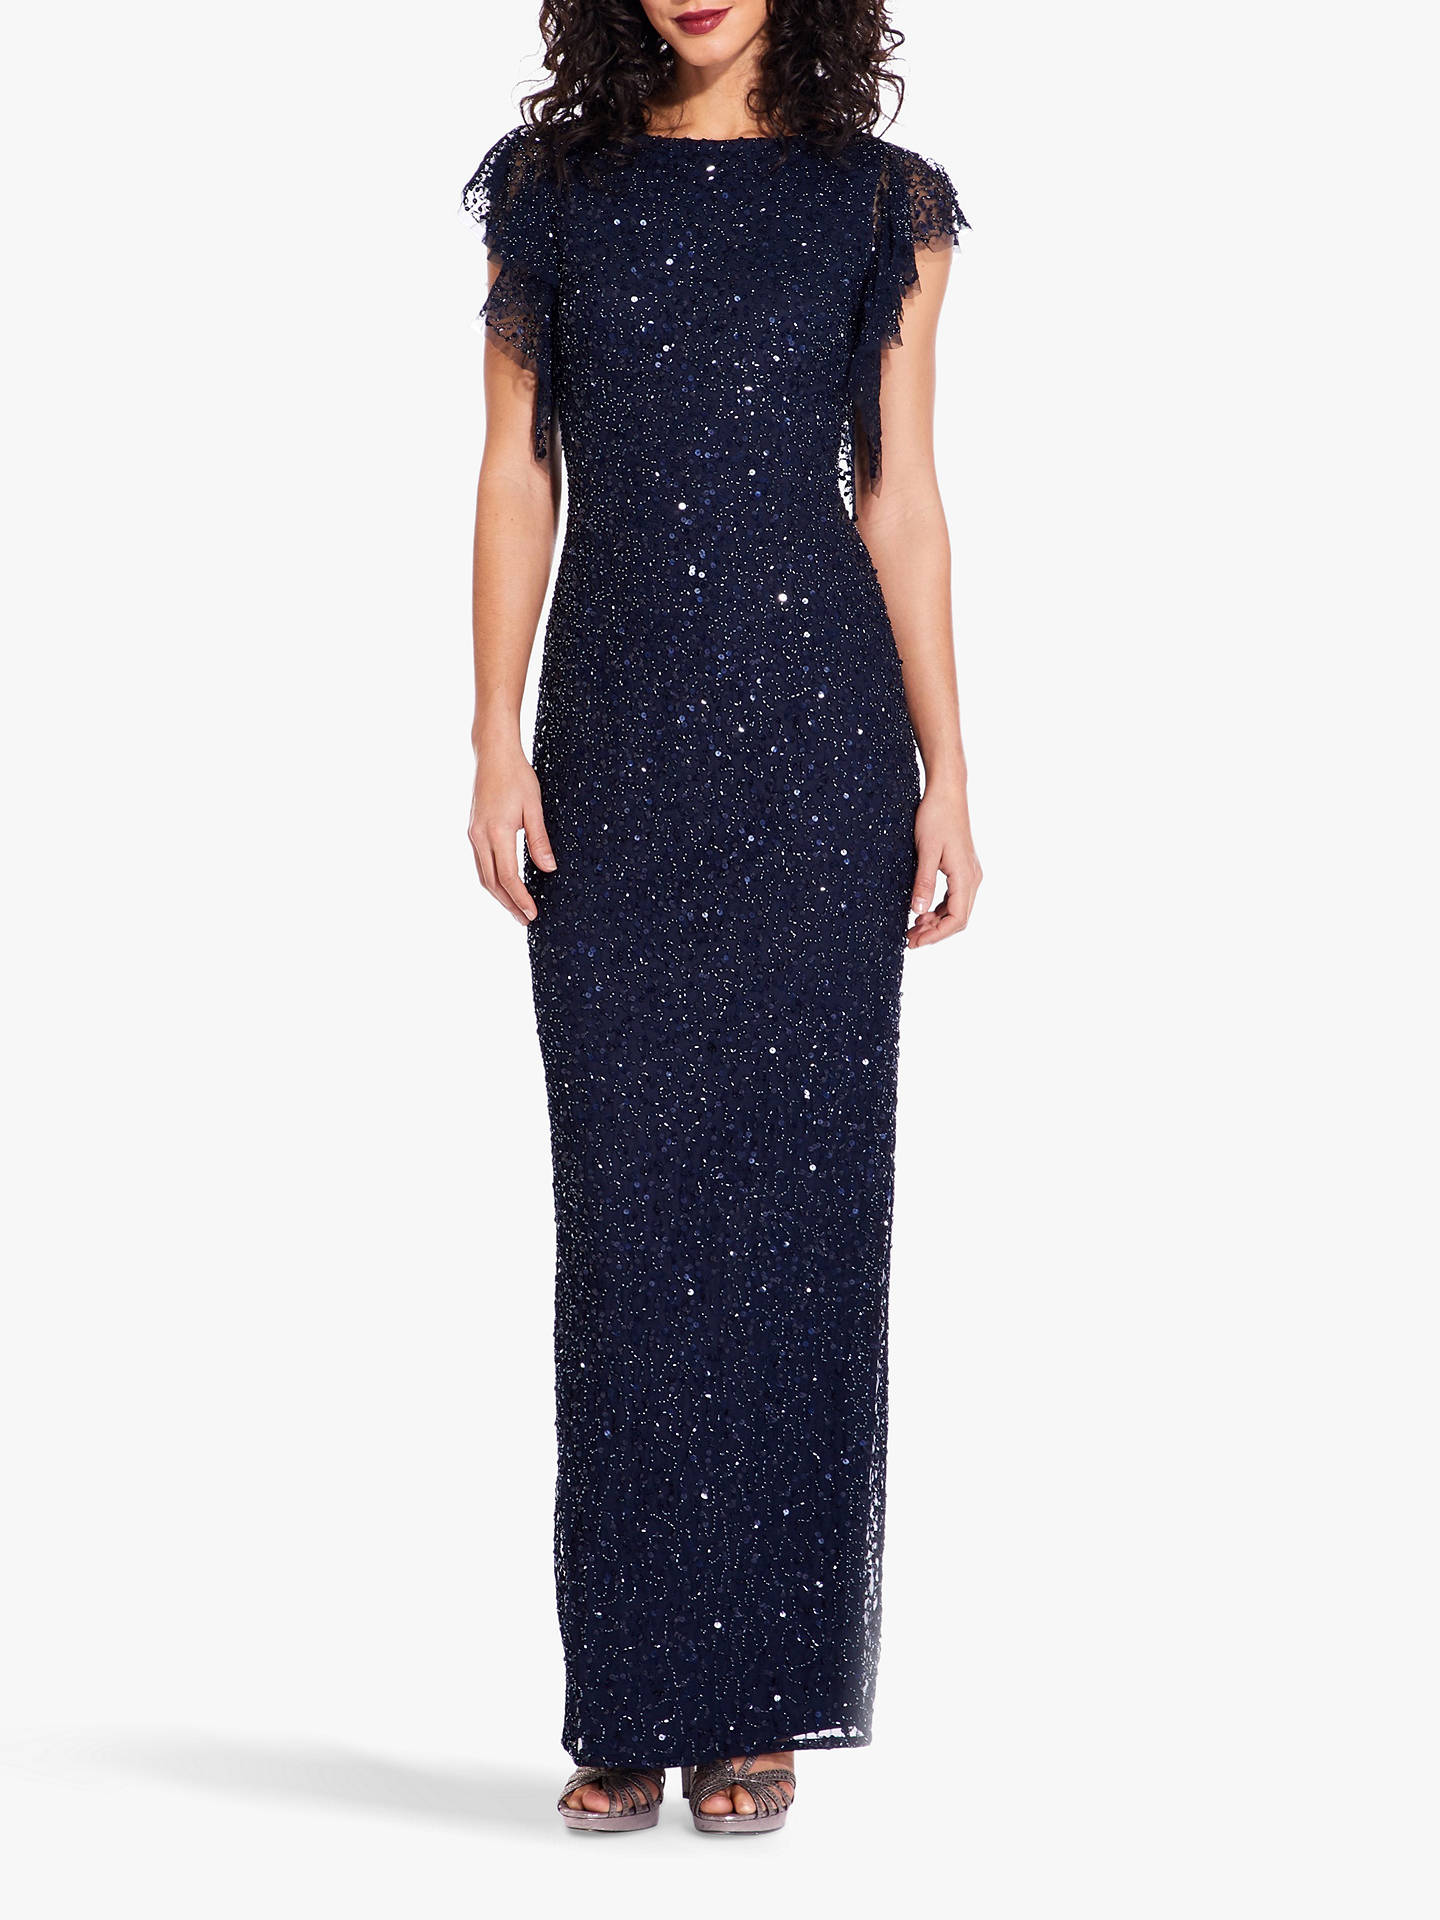 91c4b742 Buy Adrianna Papell Sequin Maxi Dress, Midnight, 6 Online at johnlewis.com  ...